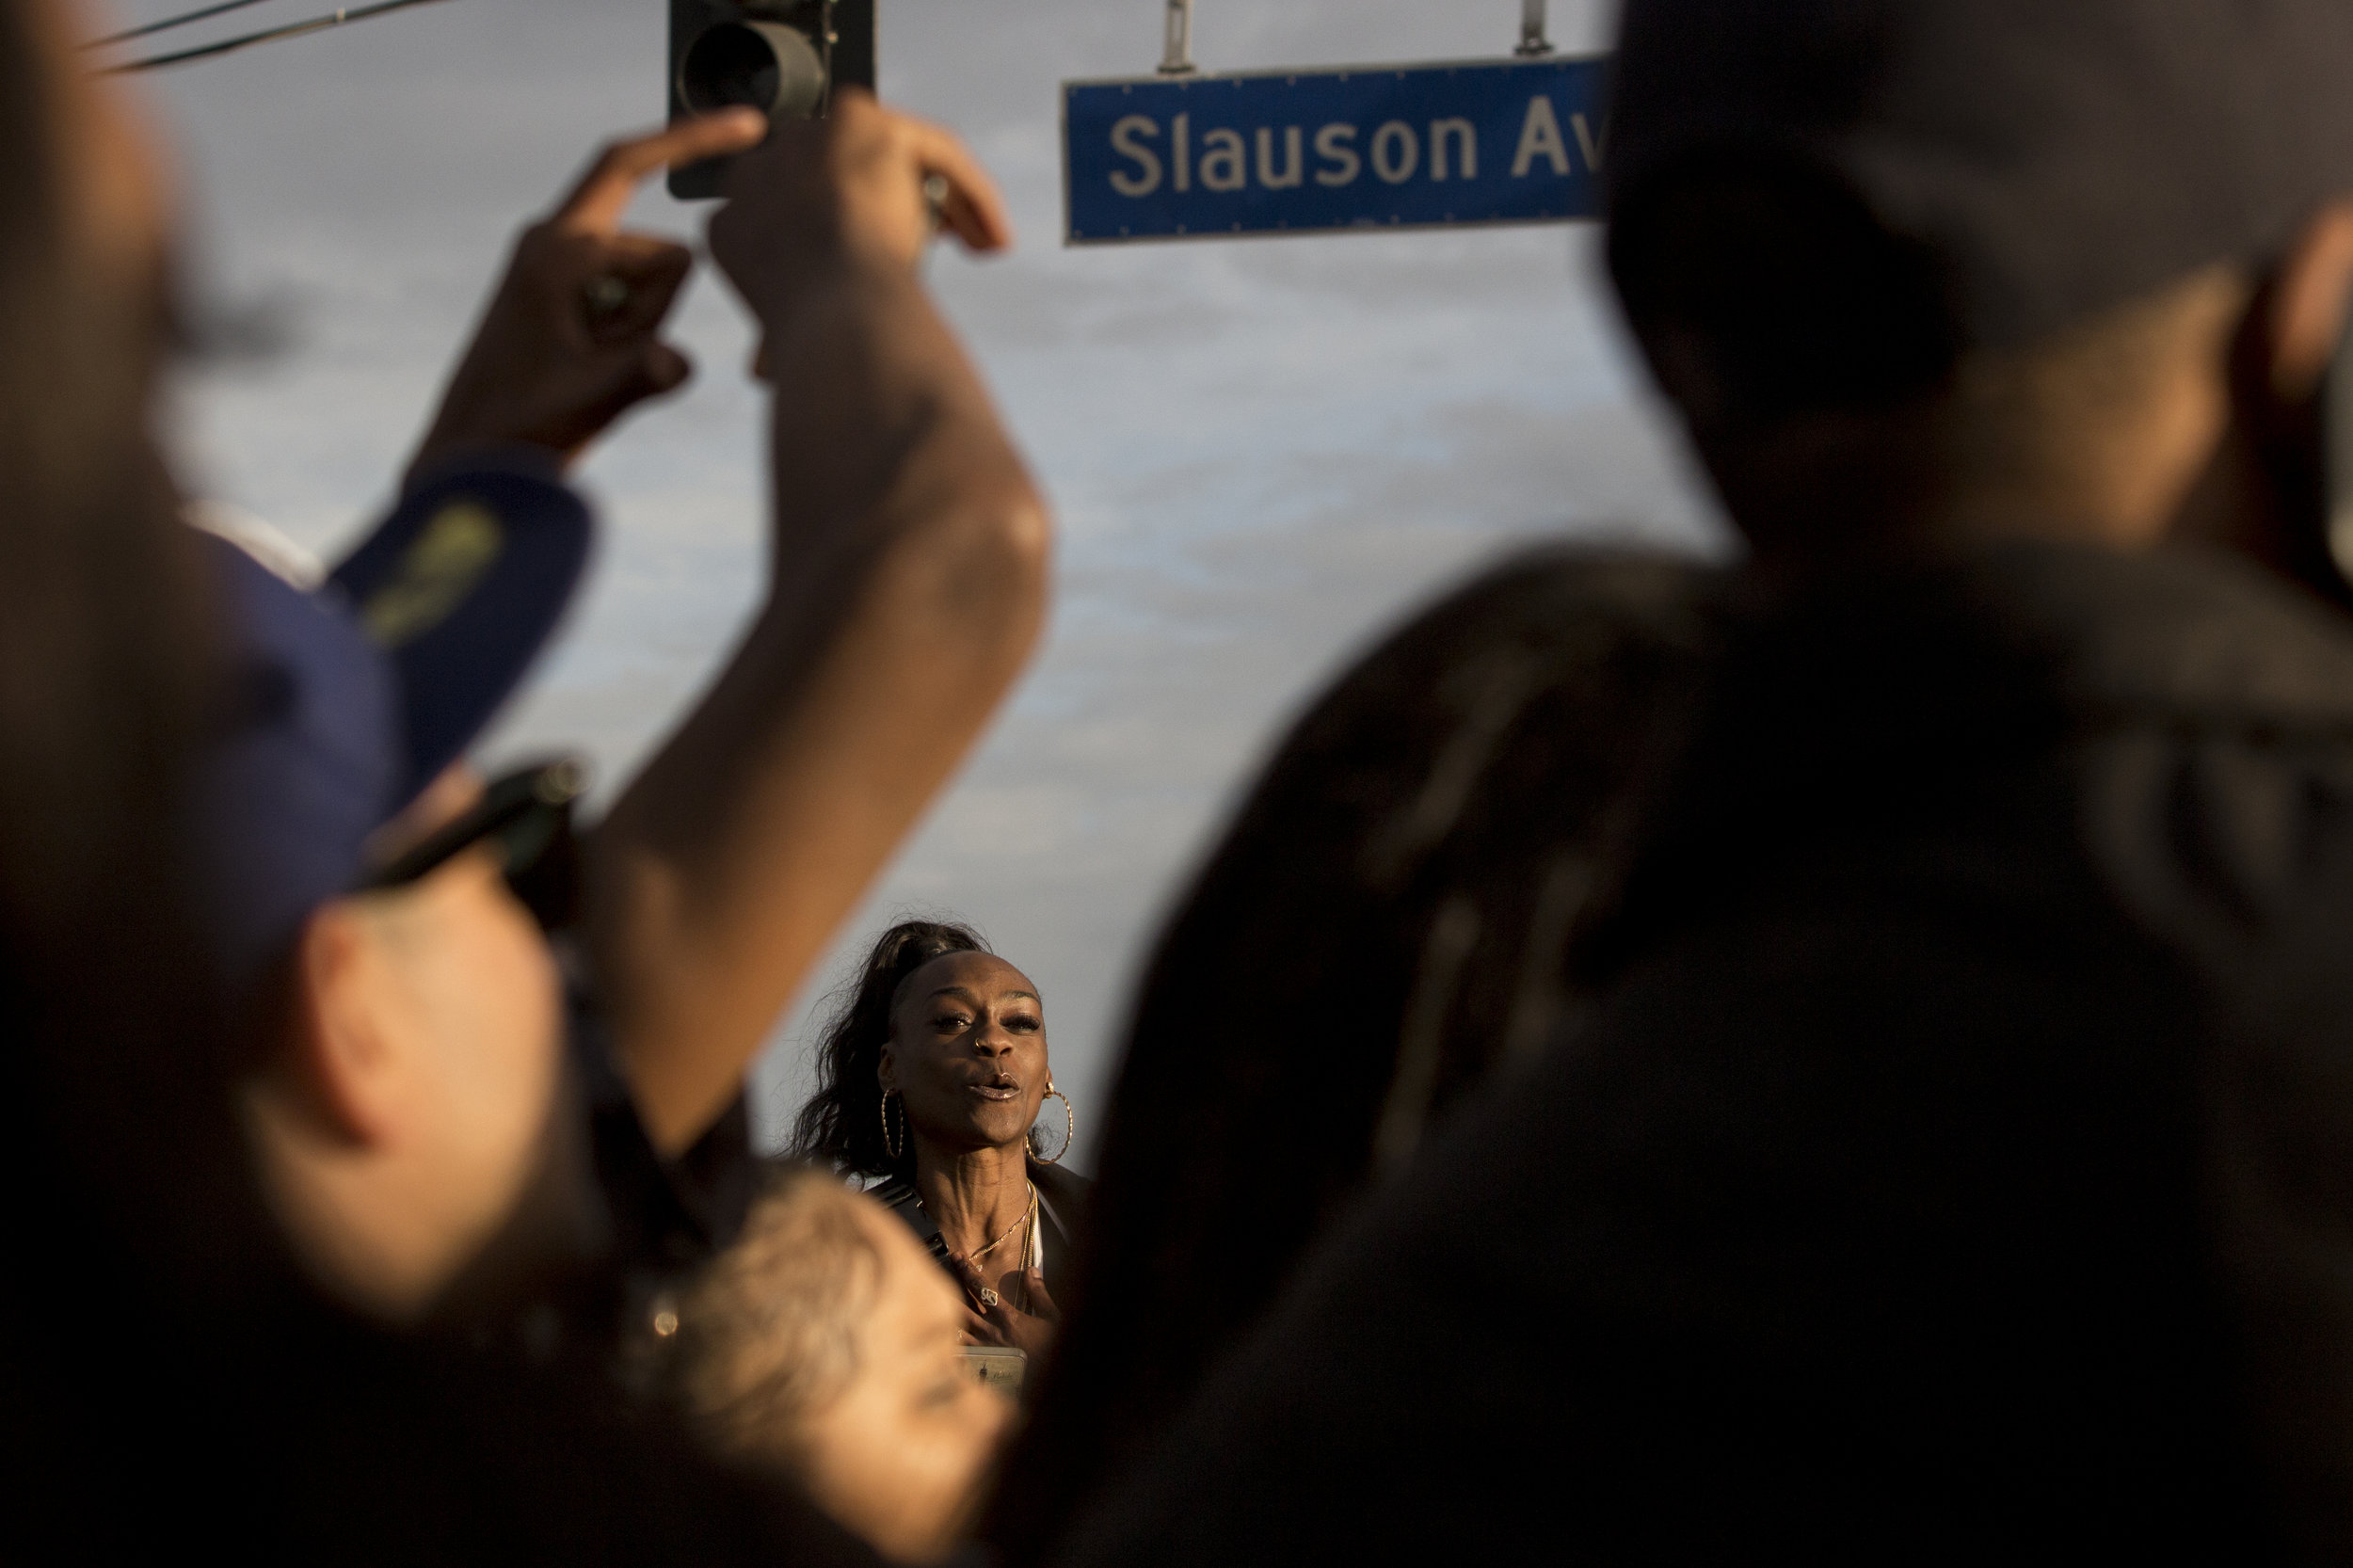 """A woman cheers loudly as the Celebration of Life procession carrying the casket of Nipsey Hussle moves closer to the intersection of Crenshaw Blvd. and Slauson Ave. in Los Angeles, California on April 11, 2019.  The hearse carrying the casket of the slain rapper, Nipsey Hussle, will journey a 25.5 mile """"Victory Lap"""" through South Central to allow his fans, who could not attend the ceremony, to say goodbye.  (Jose Lopez)"""